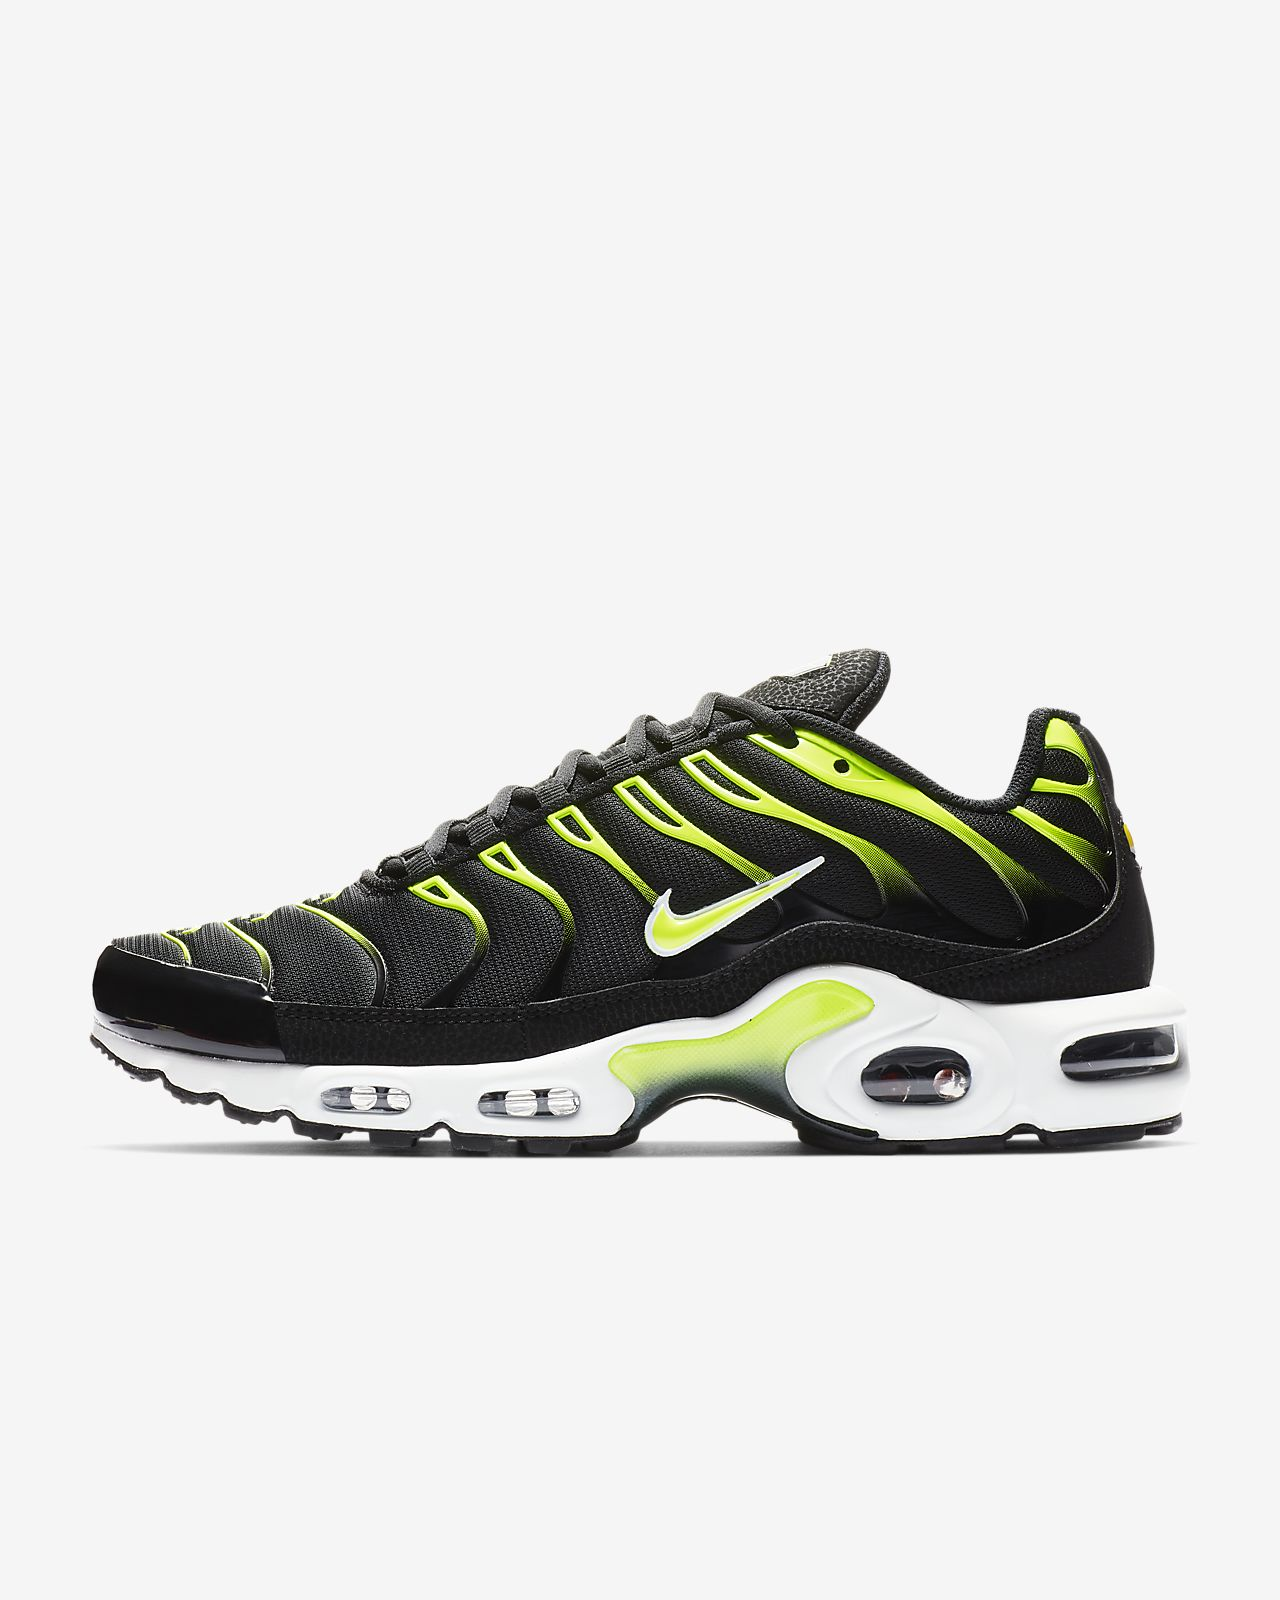 detailed look a67a4 e65e1 ... Nike Air Max Plus Men s Shoe